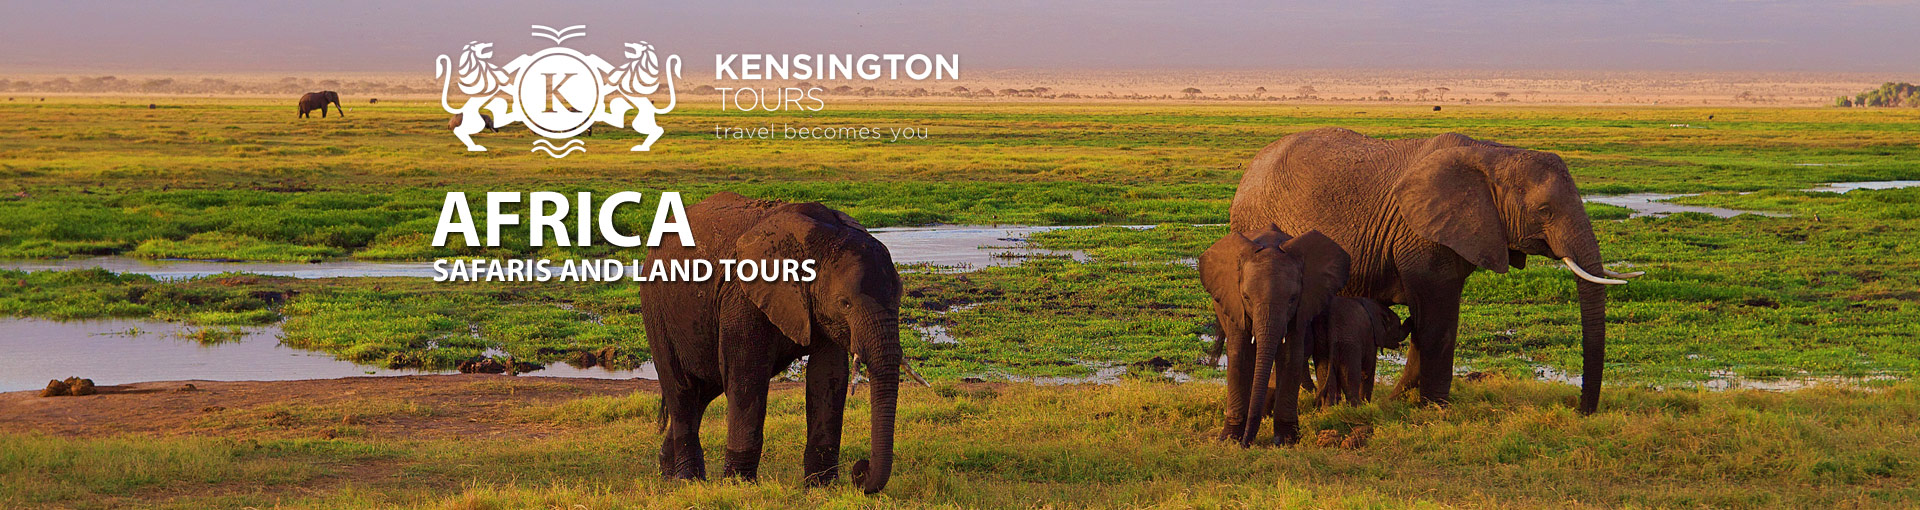 Kensington Tours - Africa Safaris and Land Tours